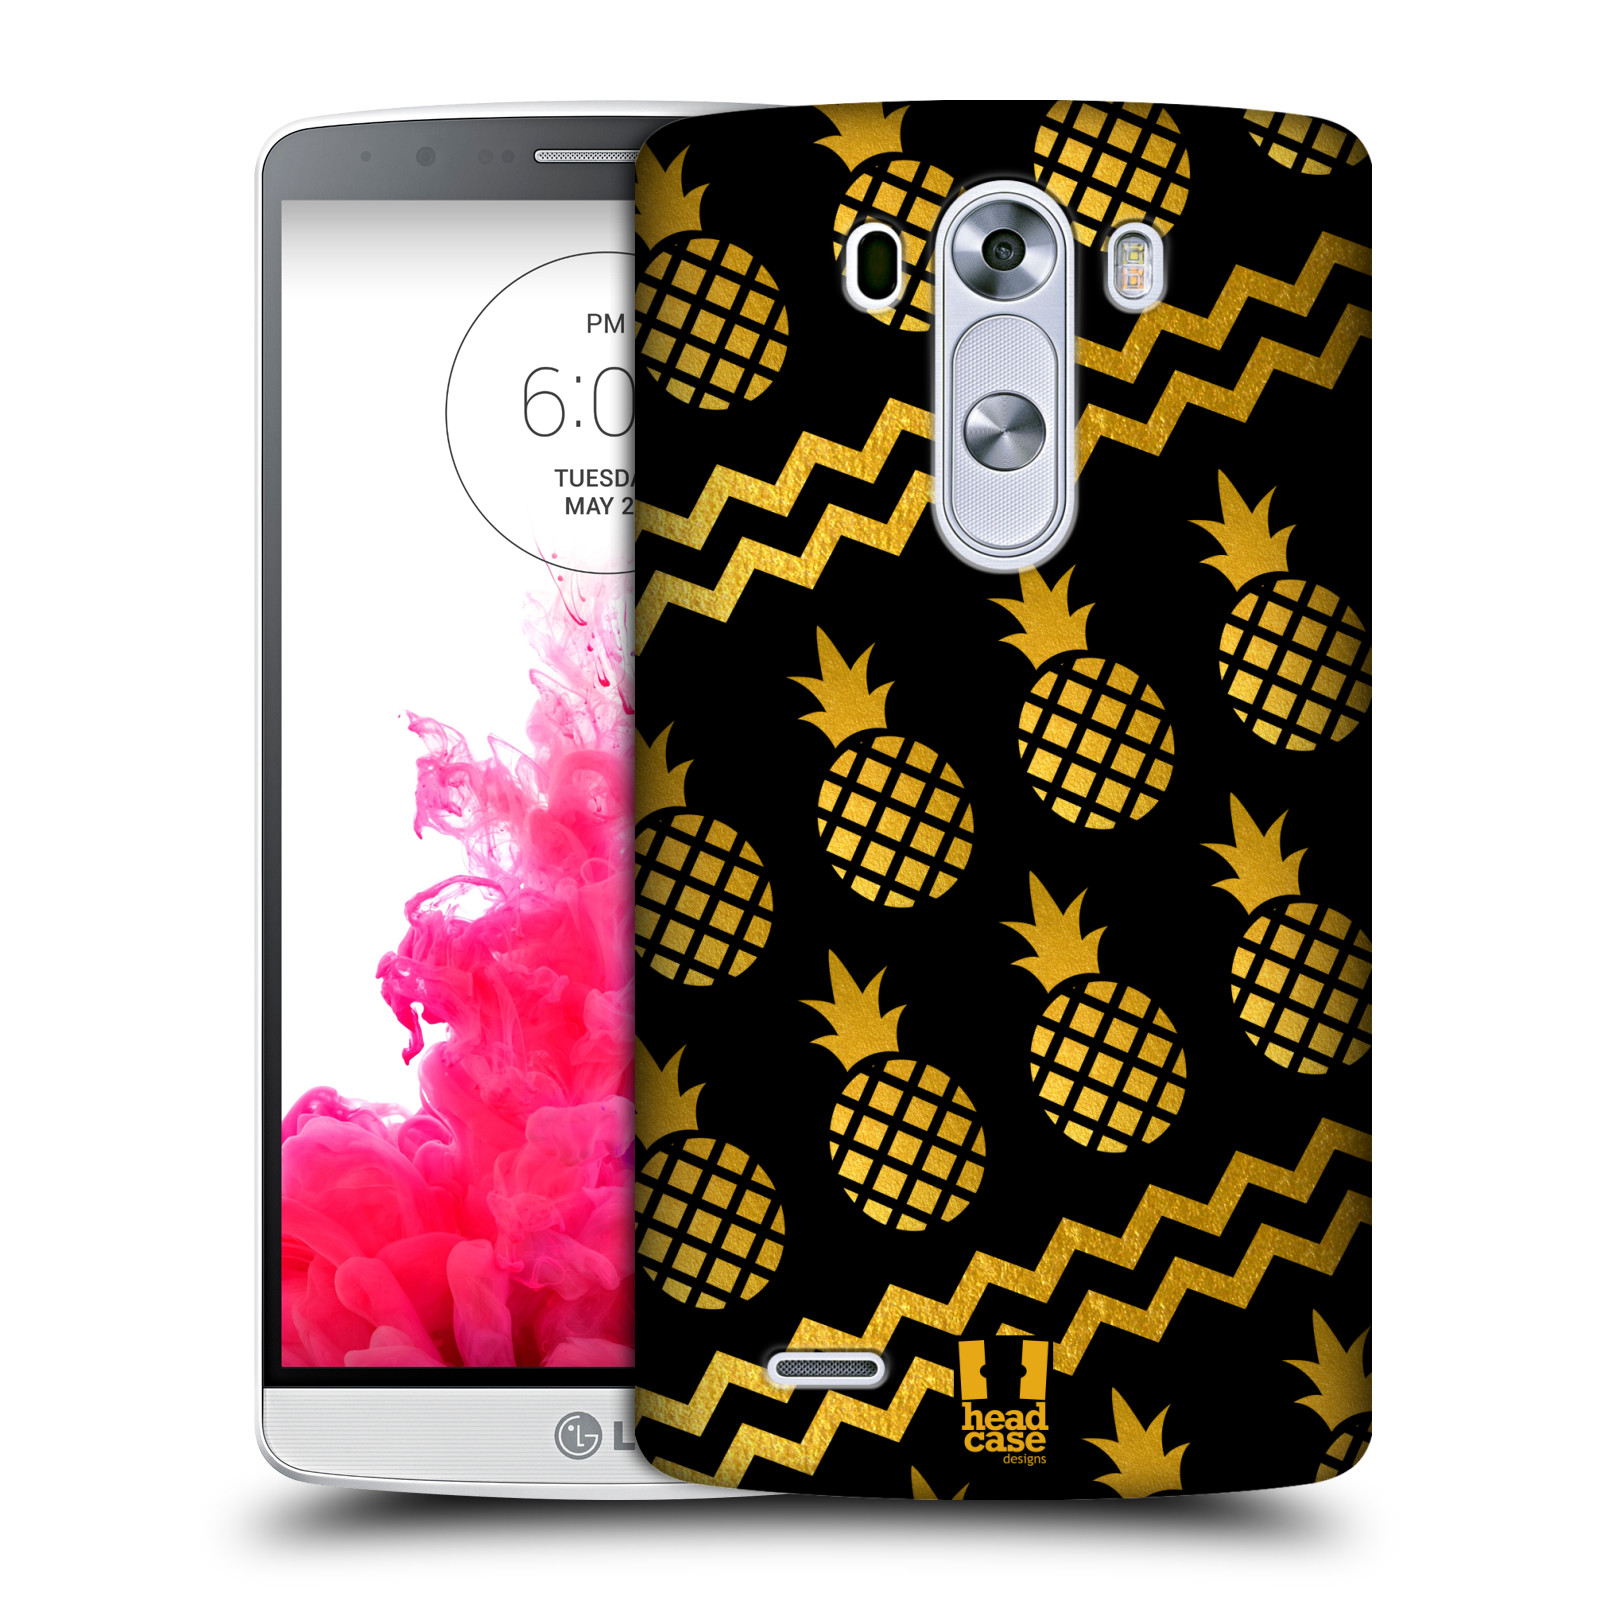 head case designs pineapple prints hard back case for lg